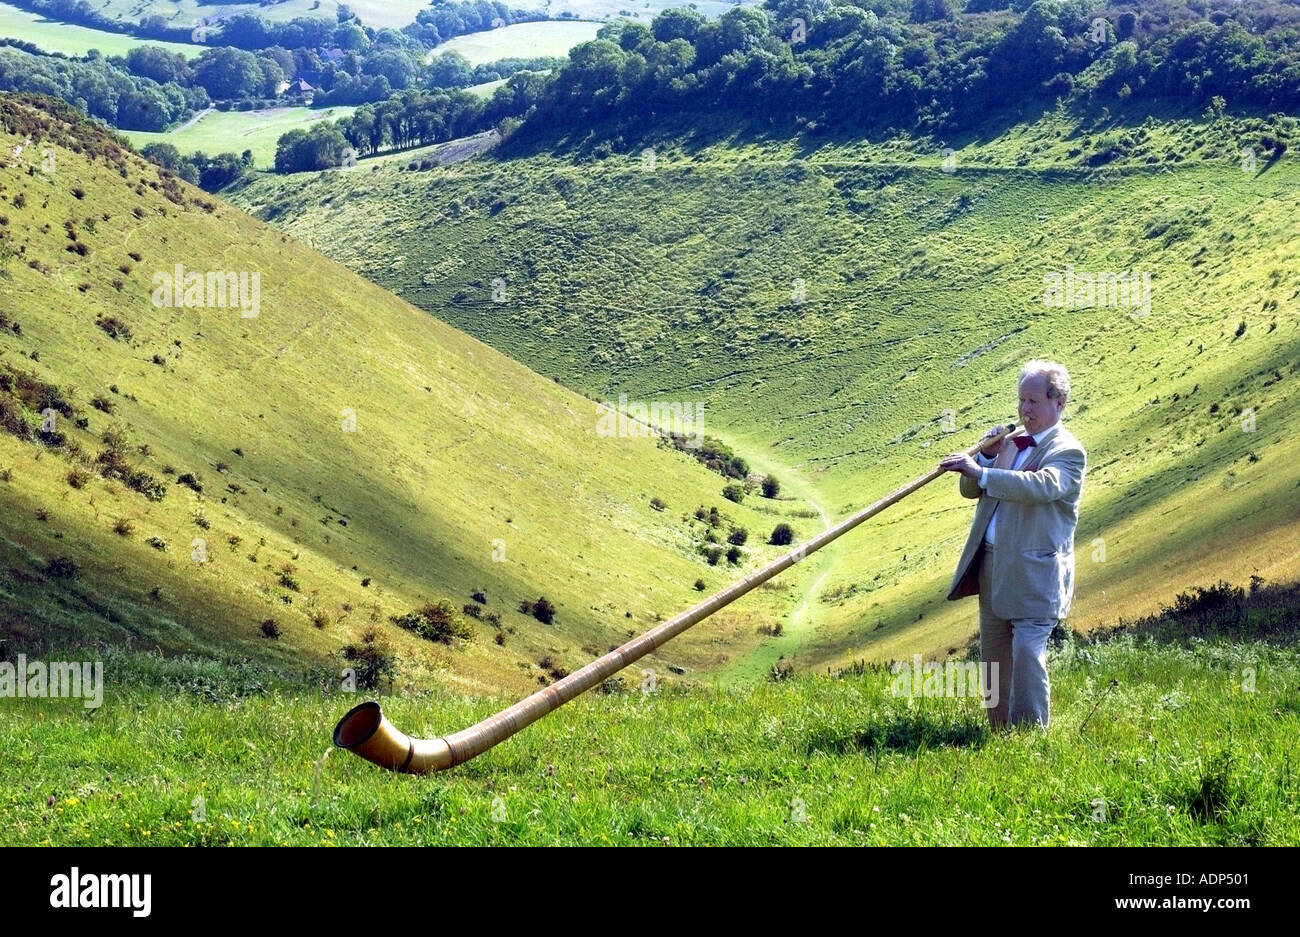 Man playing an Alpenhorn or alphorn the strange Swiss musical instrument on the 'South Downs' 'National Park' - Stock Image